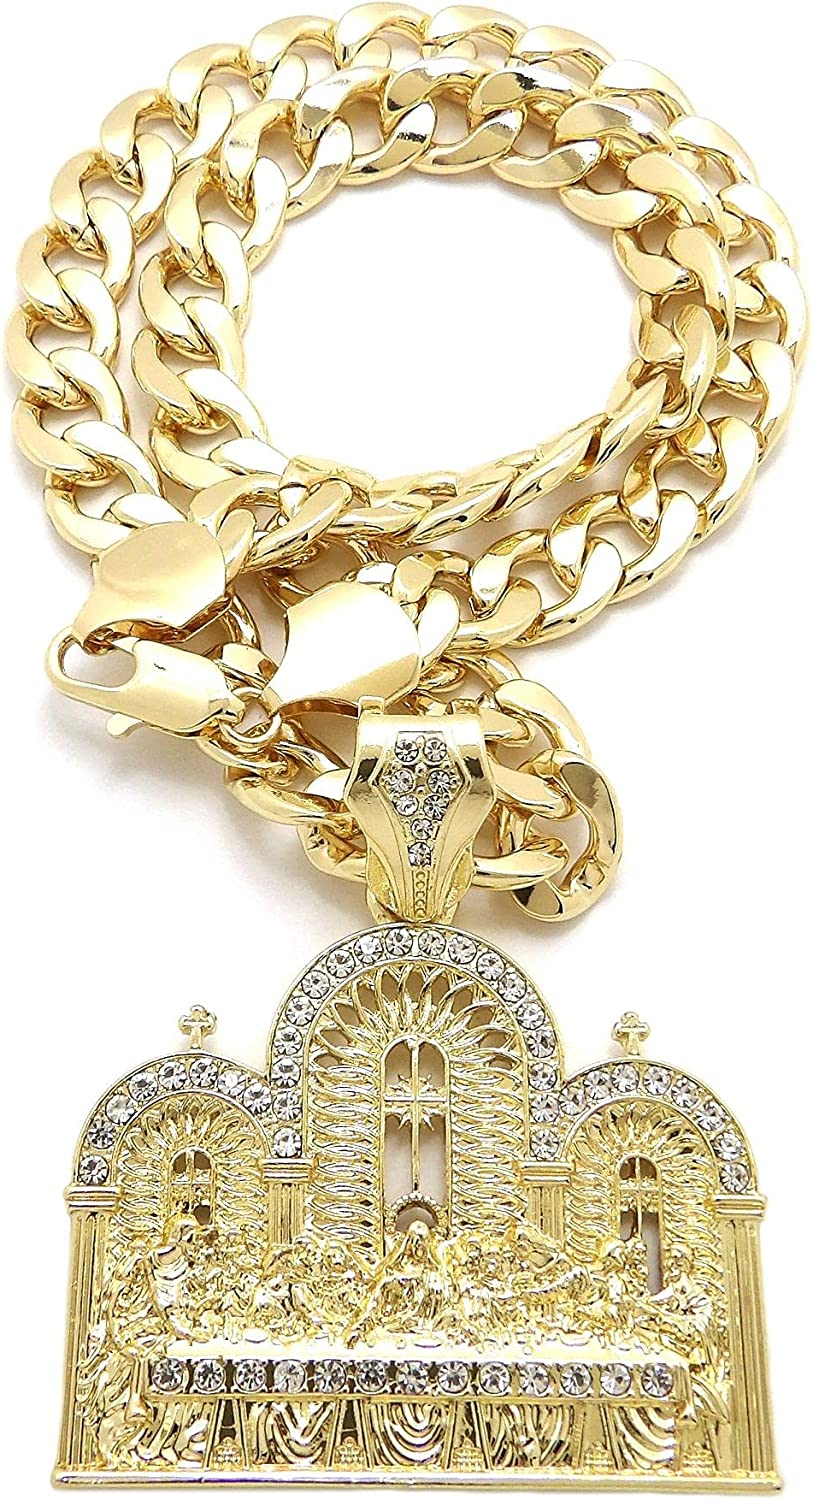 NYFASHION101 The Last Supper Pendant with 11mm Cuban Chain Necklace